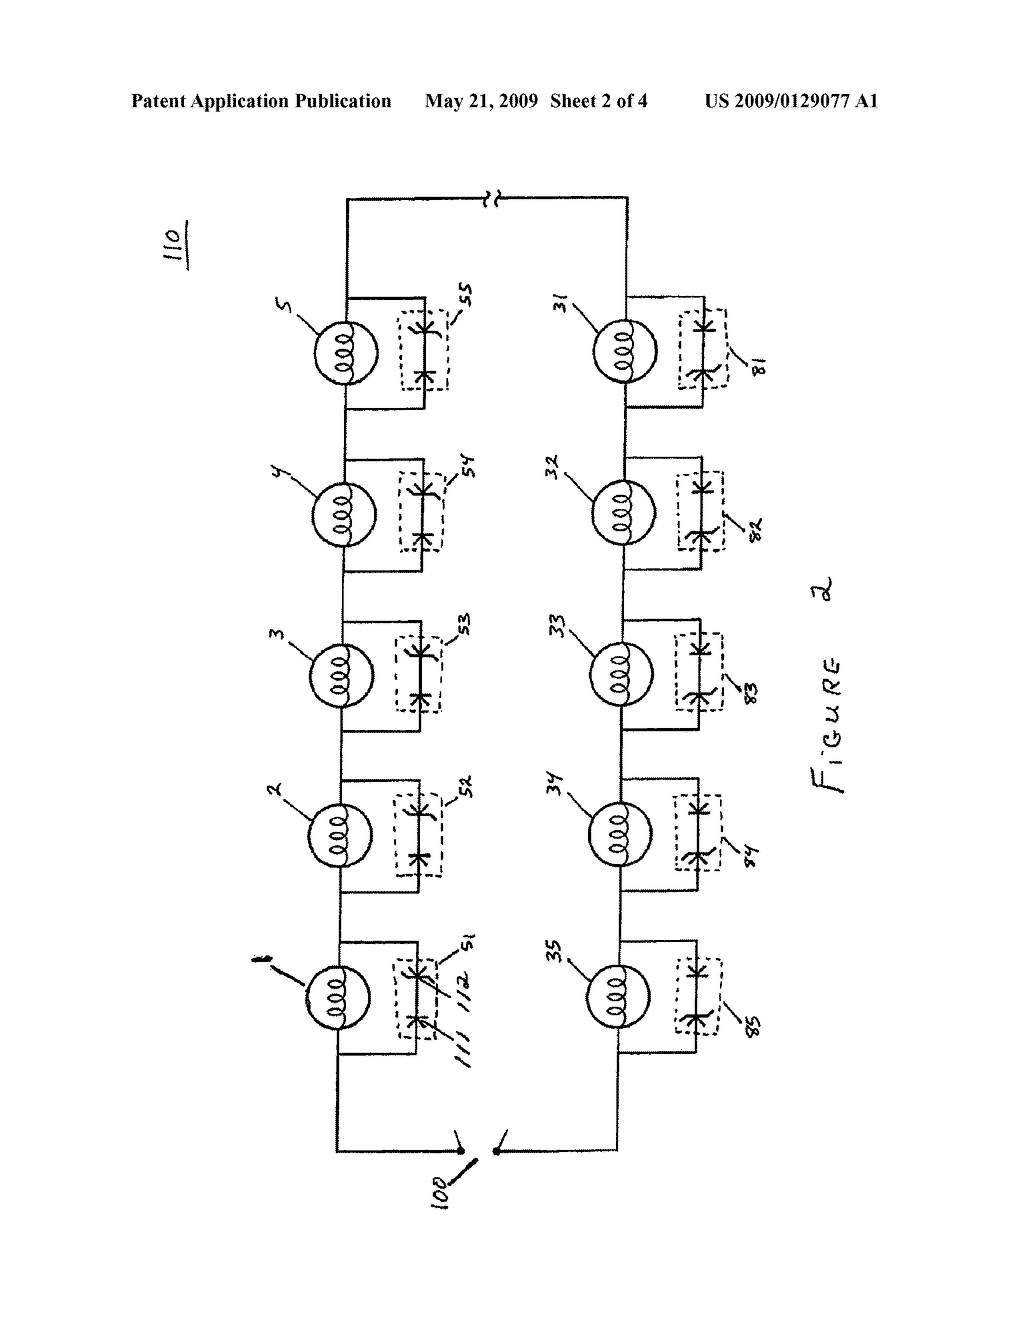 led christmas light wiring diagram 3 wire Download-wiring diagram 3 wire christmas lights Download Wiring Diagram For Lights In Series Inside Led 9-l